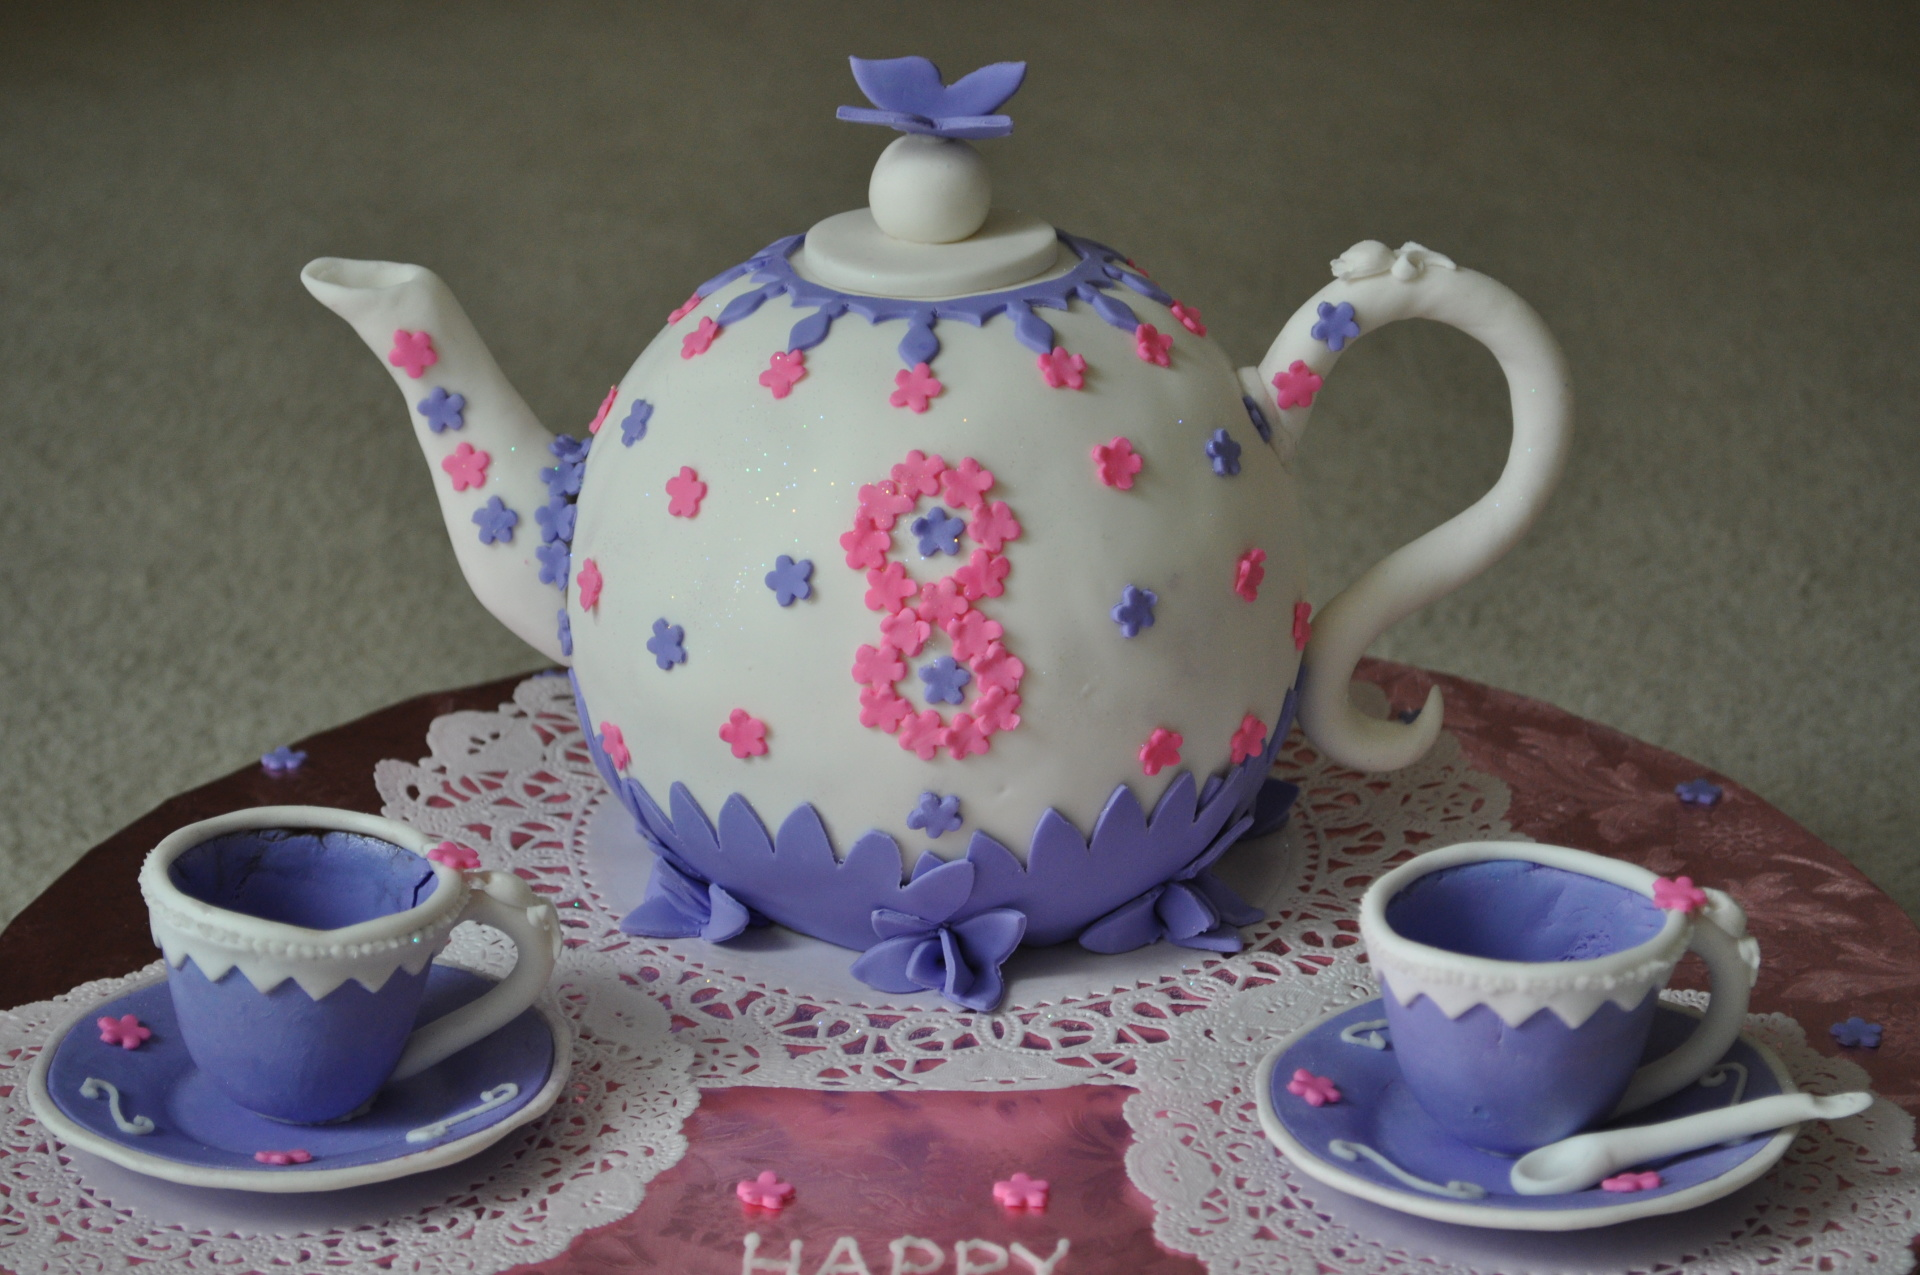 Tea party kettle with fondant cup and saucers